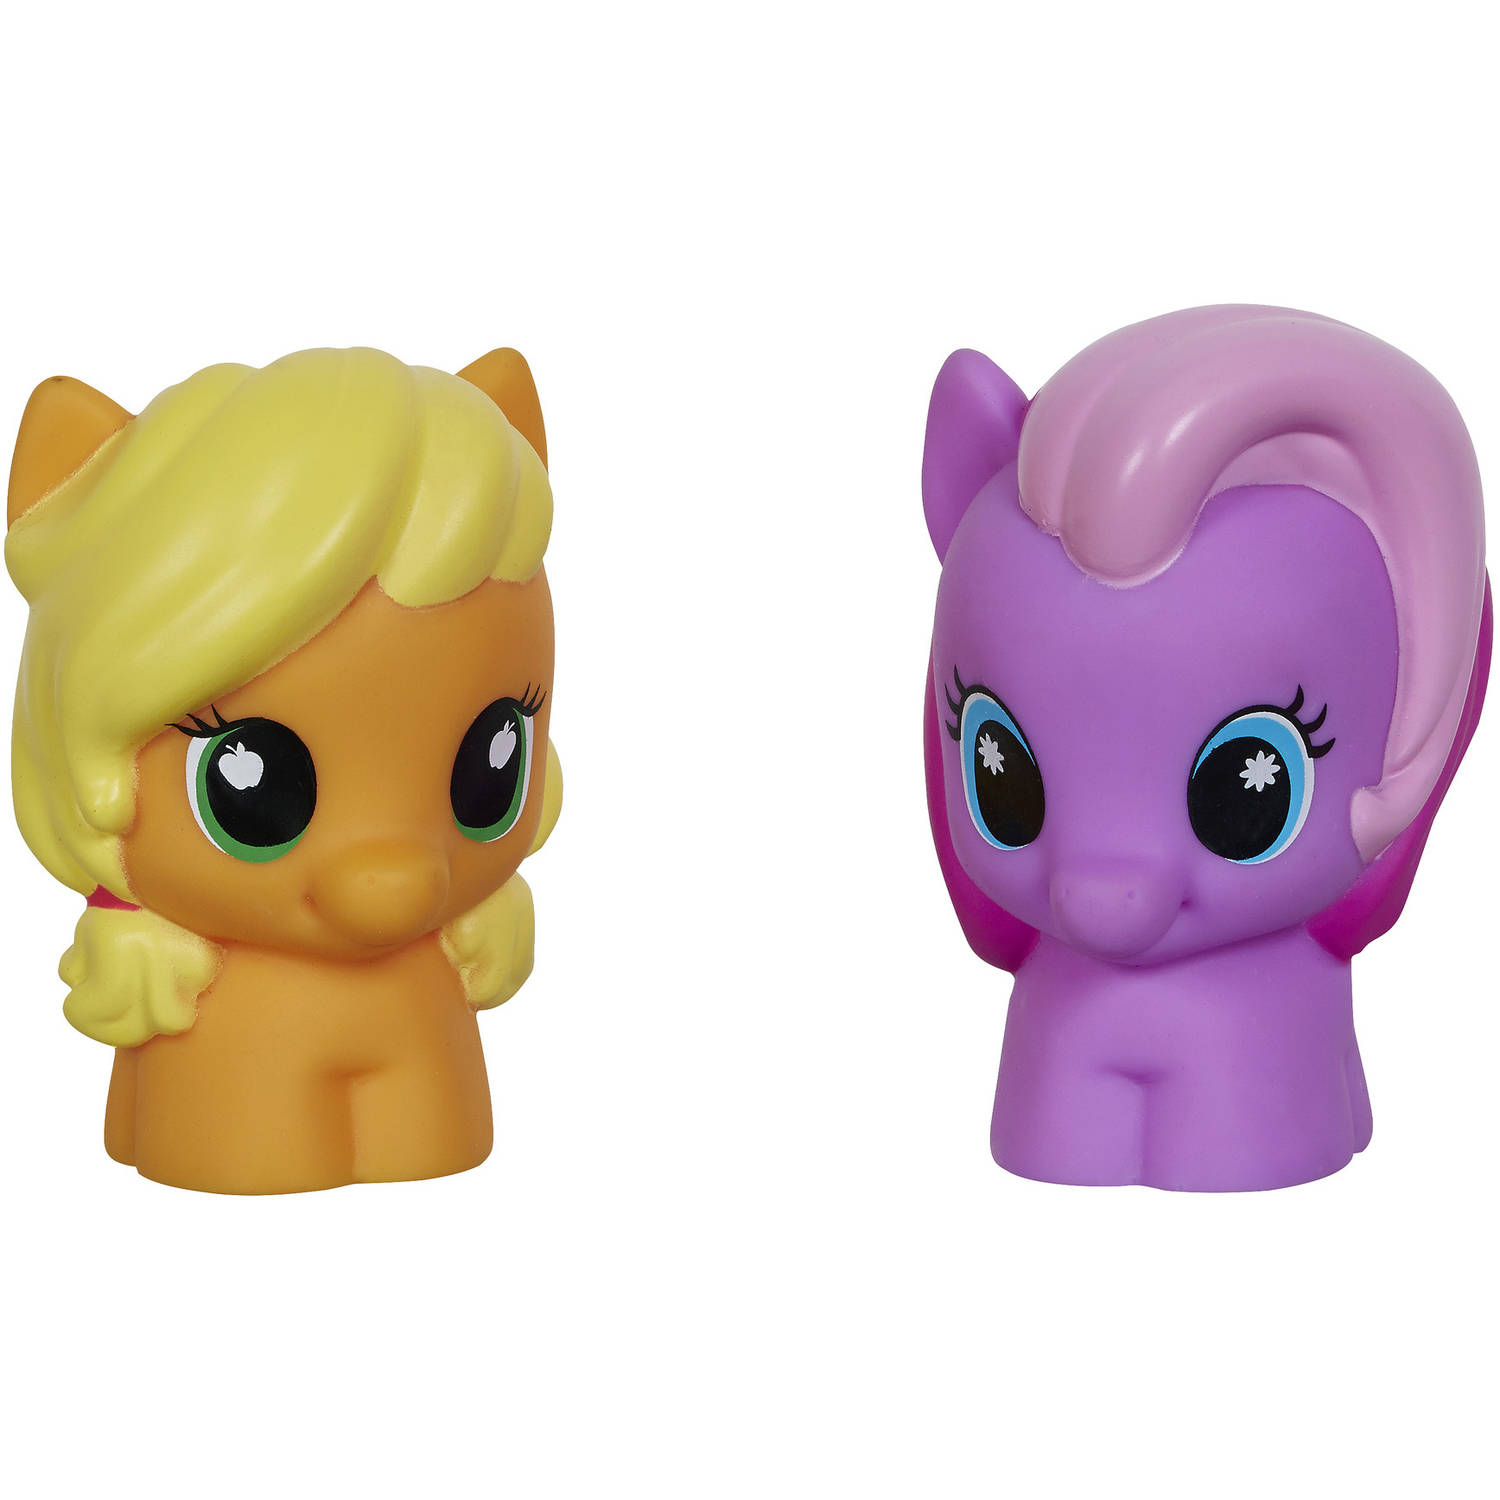 Playskool Friends My Little Pony Figure Two-Pack with Applejack and Daisy Dreams by Hasbro